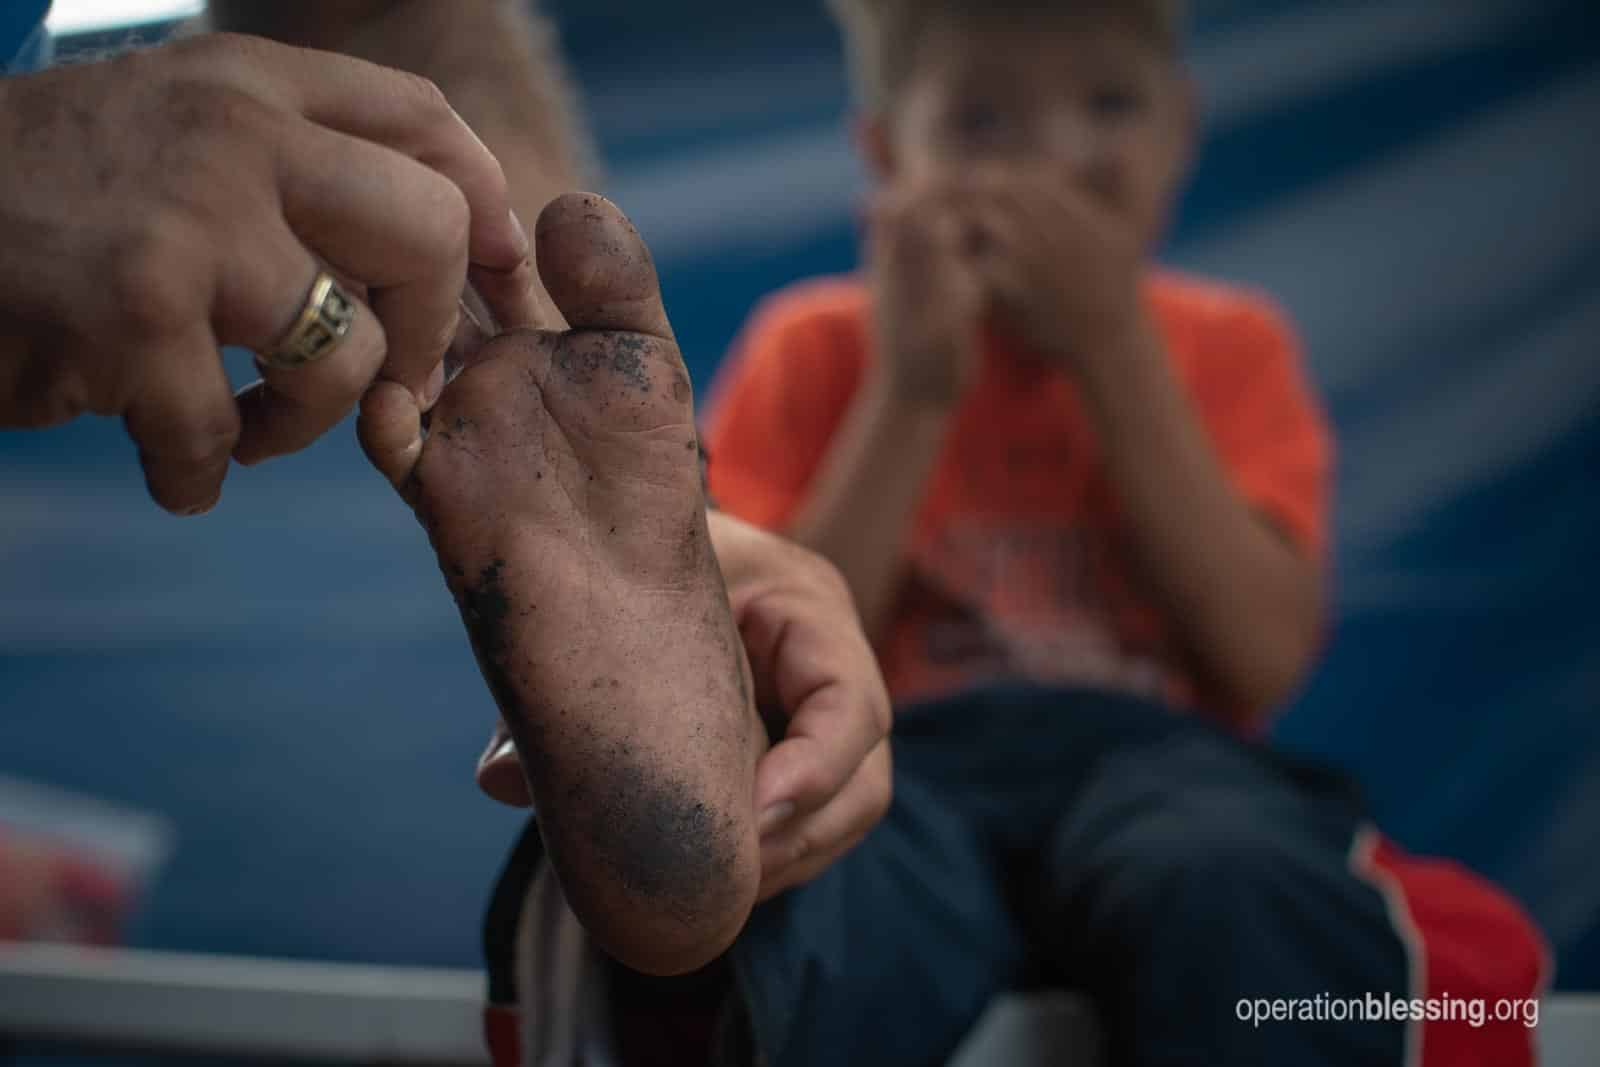 The dirty injured foot of a young Venezuelan refugee.